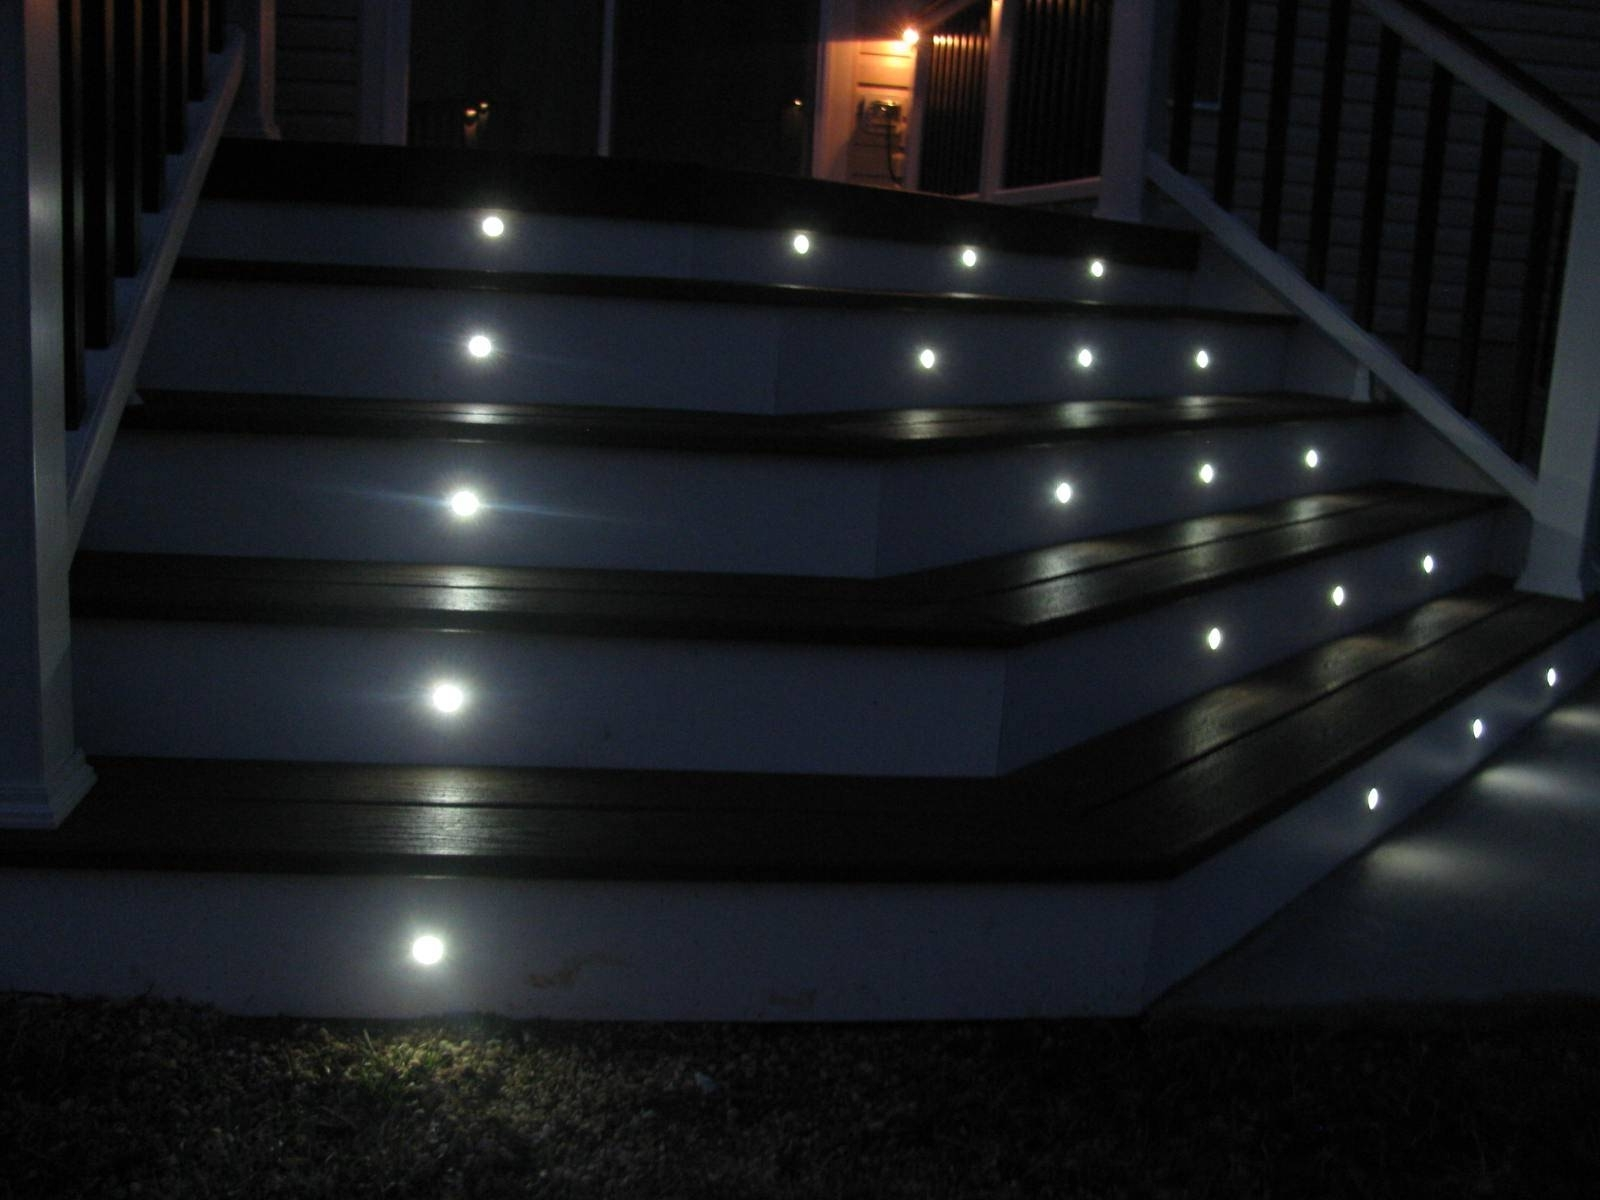 Widely Used Stunning New Led Strip Deck Lighting Pics Of Lights Popular And Home Inside Low Voltage Deck Lighting At Home Depot (View 13 of 20)